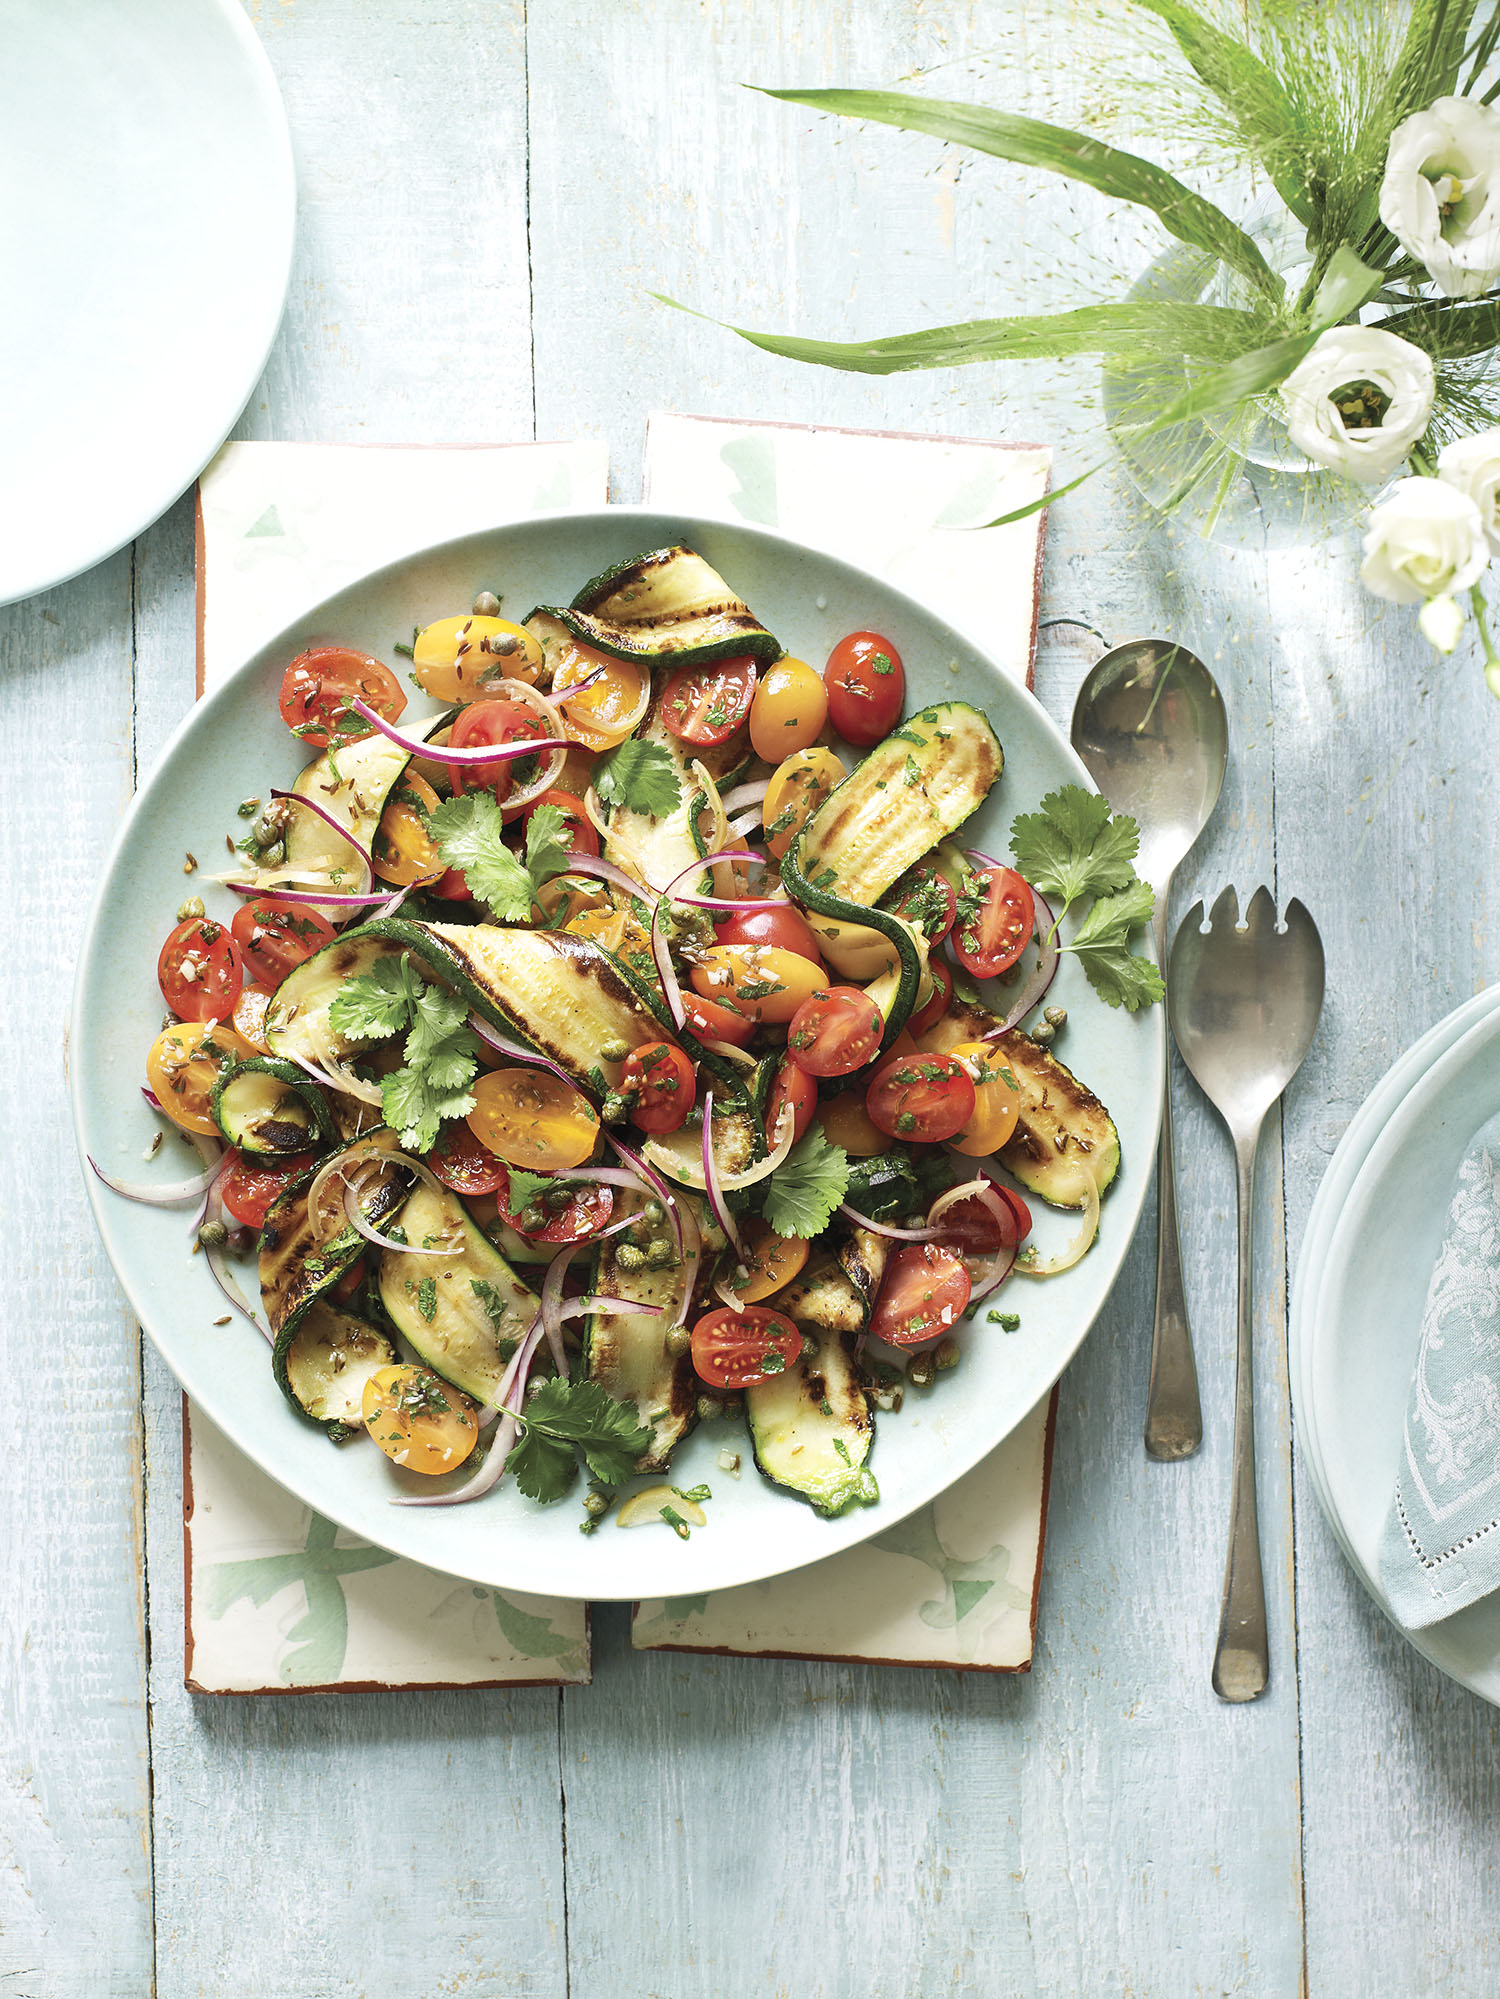 Courgette Salad Photograph Kate Whitaker Prop Styling Davina Perkins